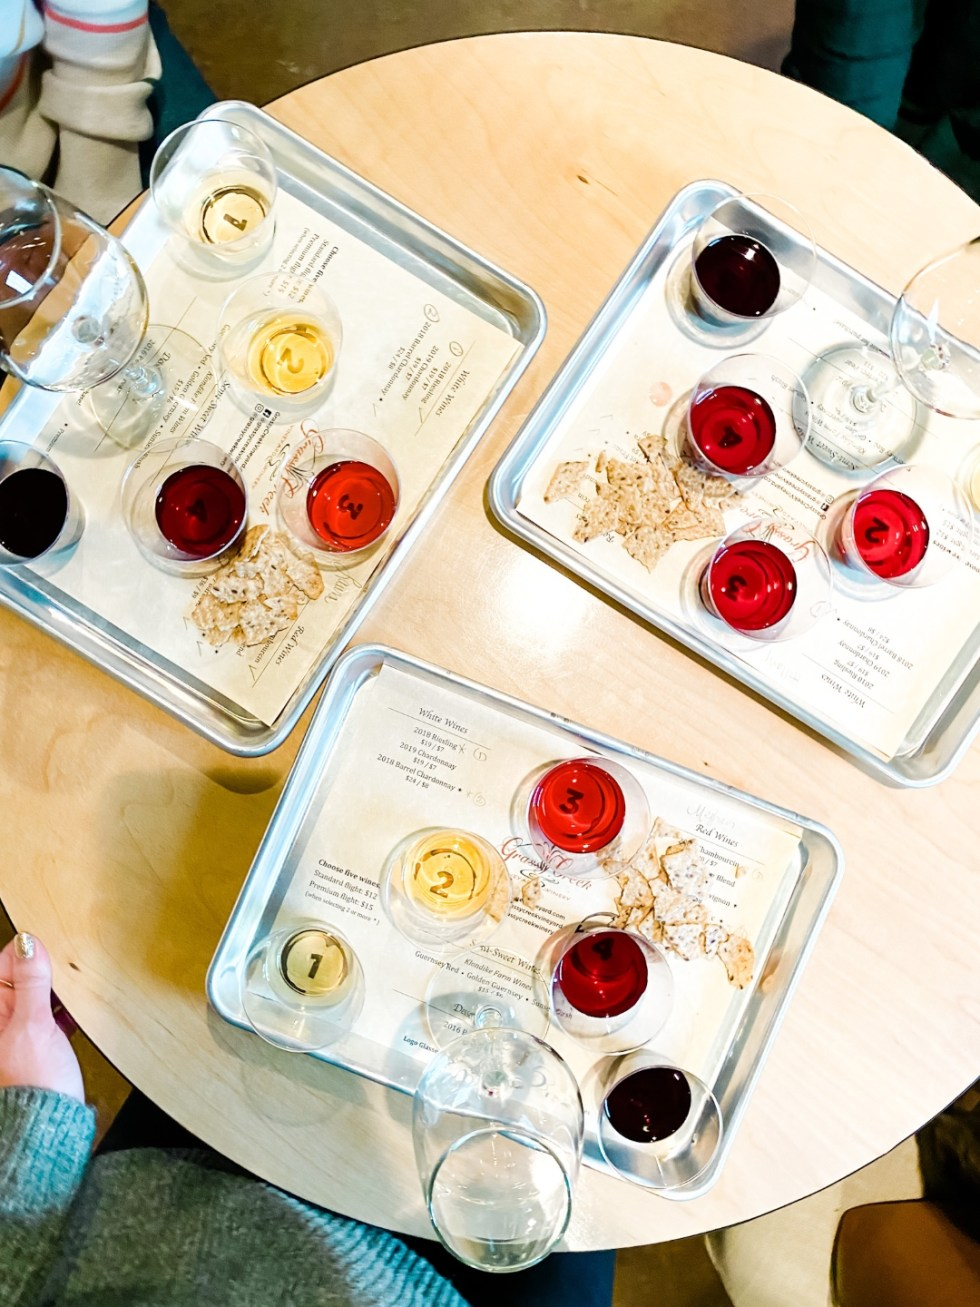 Western NC Wineries: 6 Wineries to Visit During your Next Girls' Weekend - I'm Fixin' To - @mbg0112 |Western NC Wineries by popular NC blog, I'm Fixin' To: image of a wine tasting tray at Grassy Creek Vineyard and Winery.